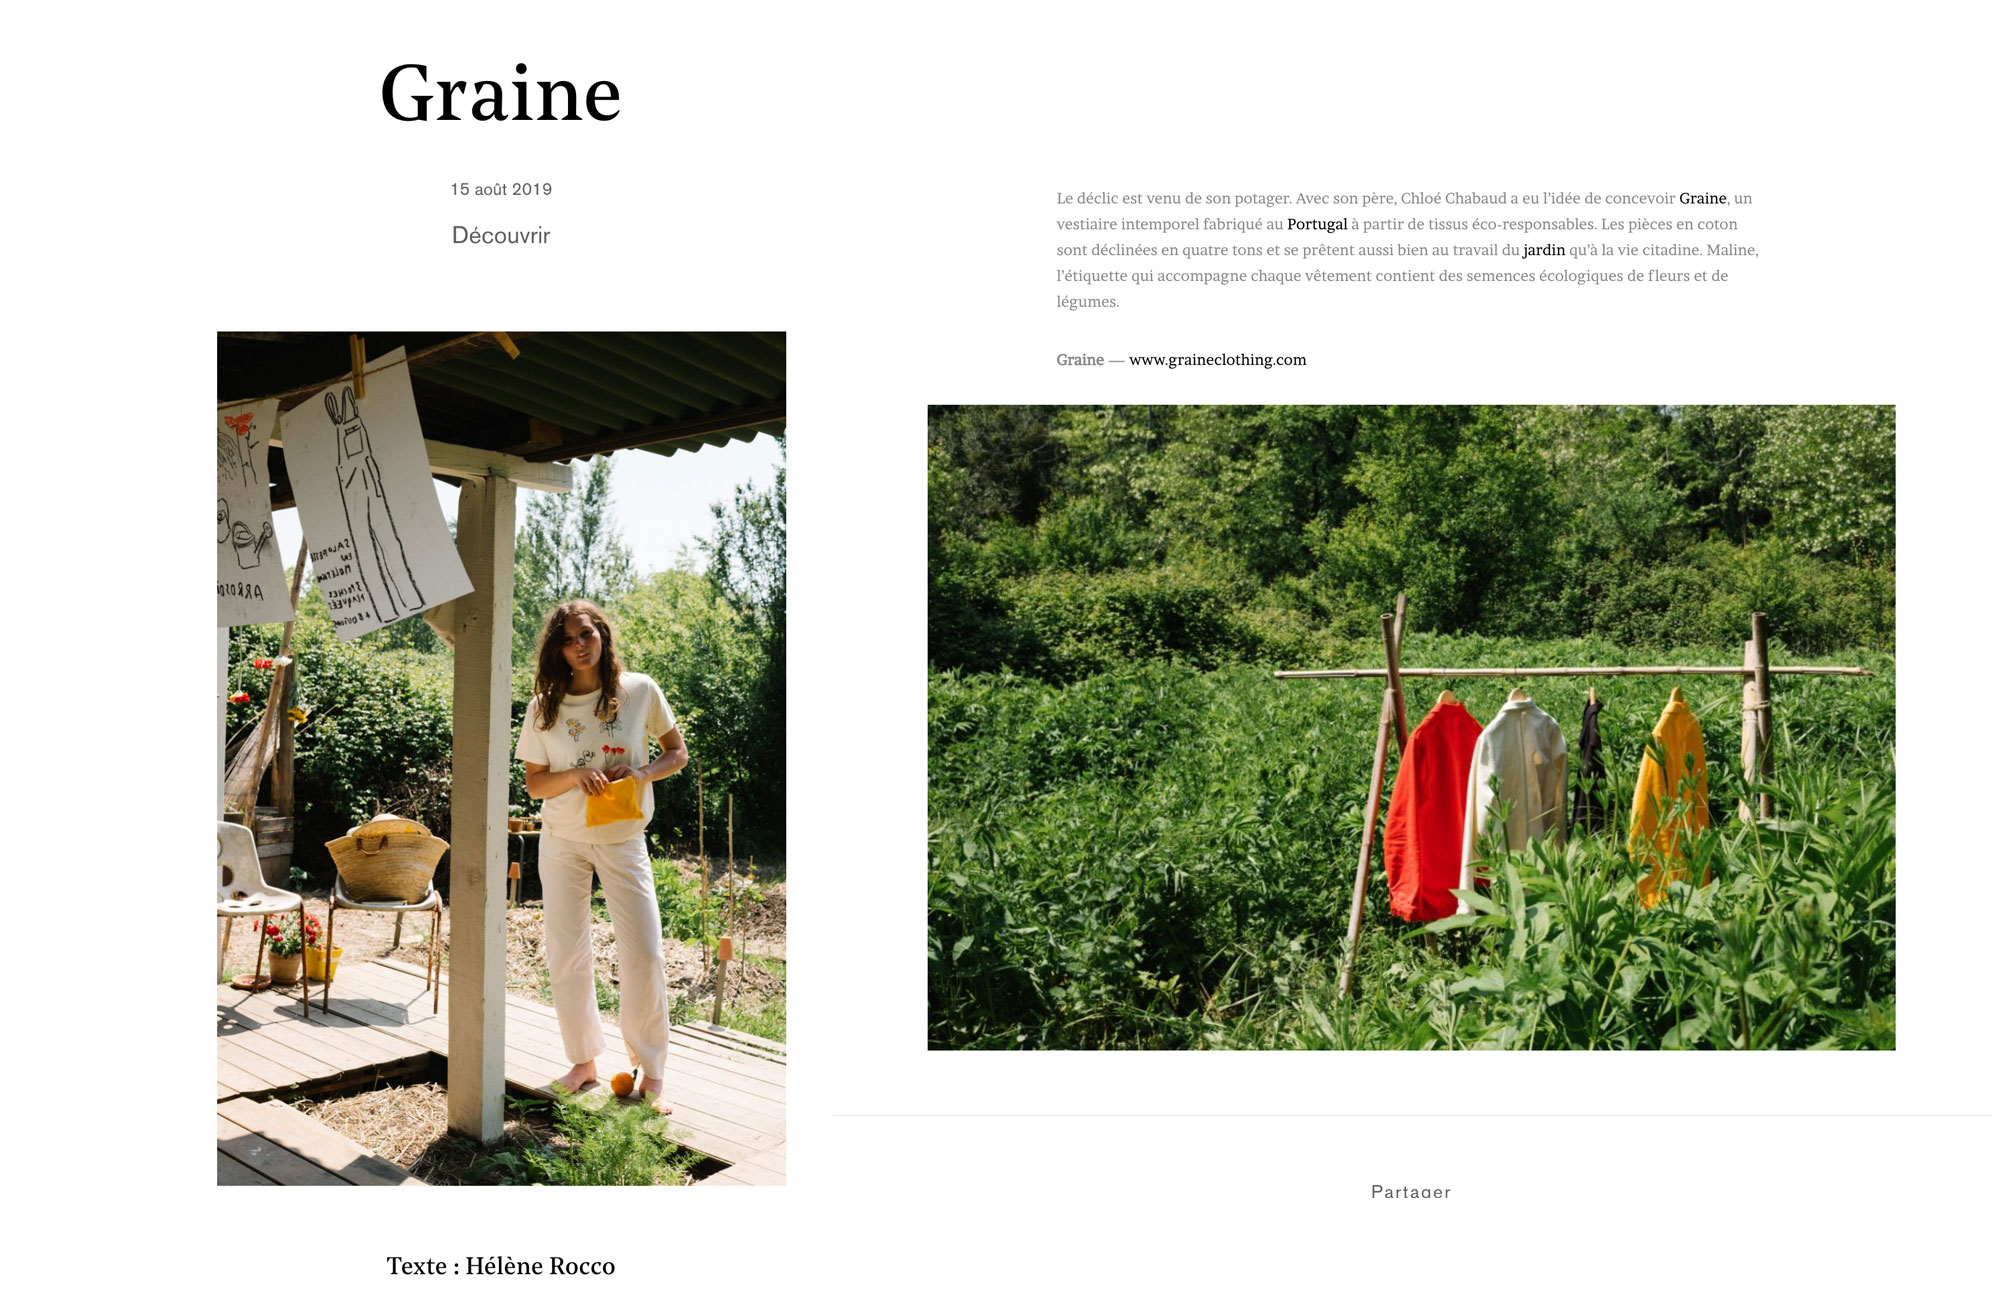 Graine - Parution web sur Mint Magazine